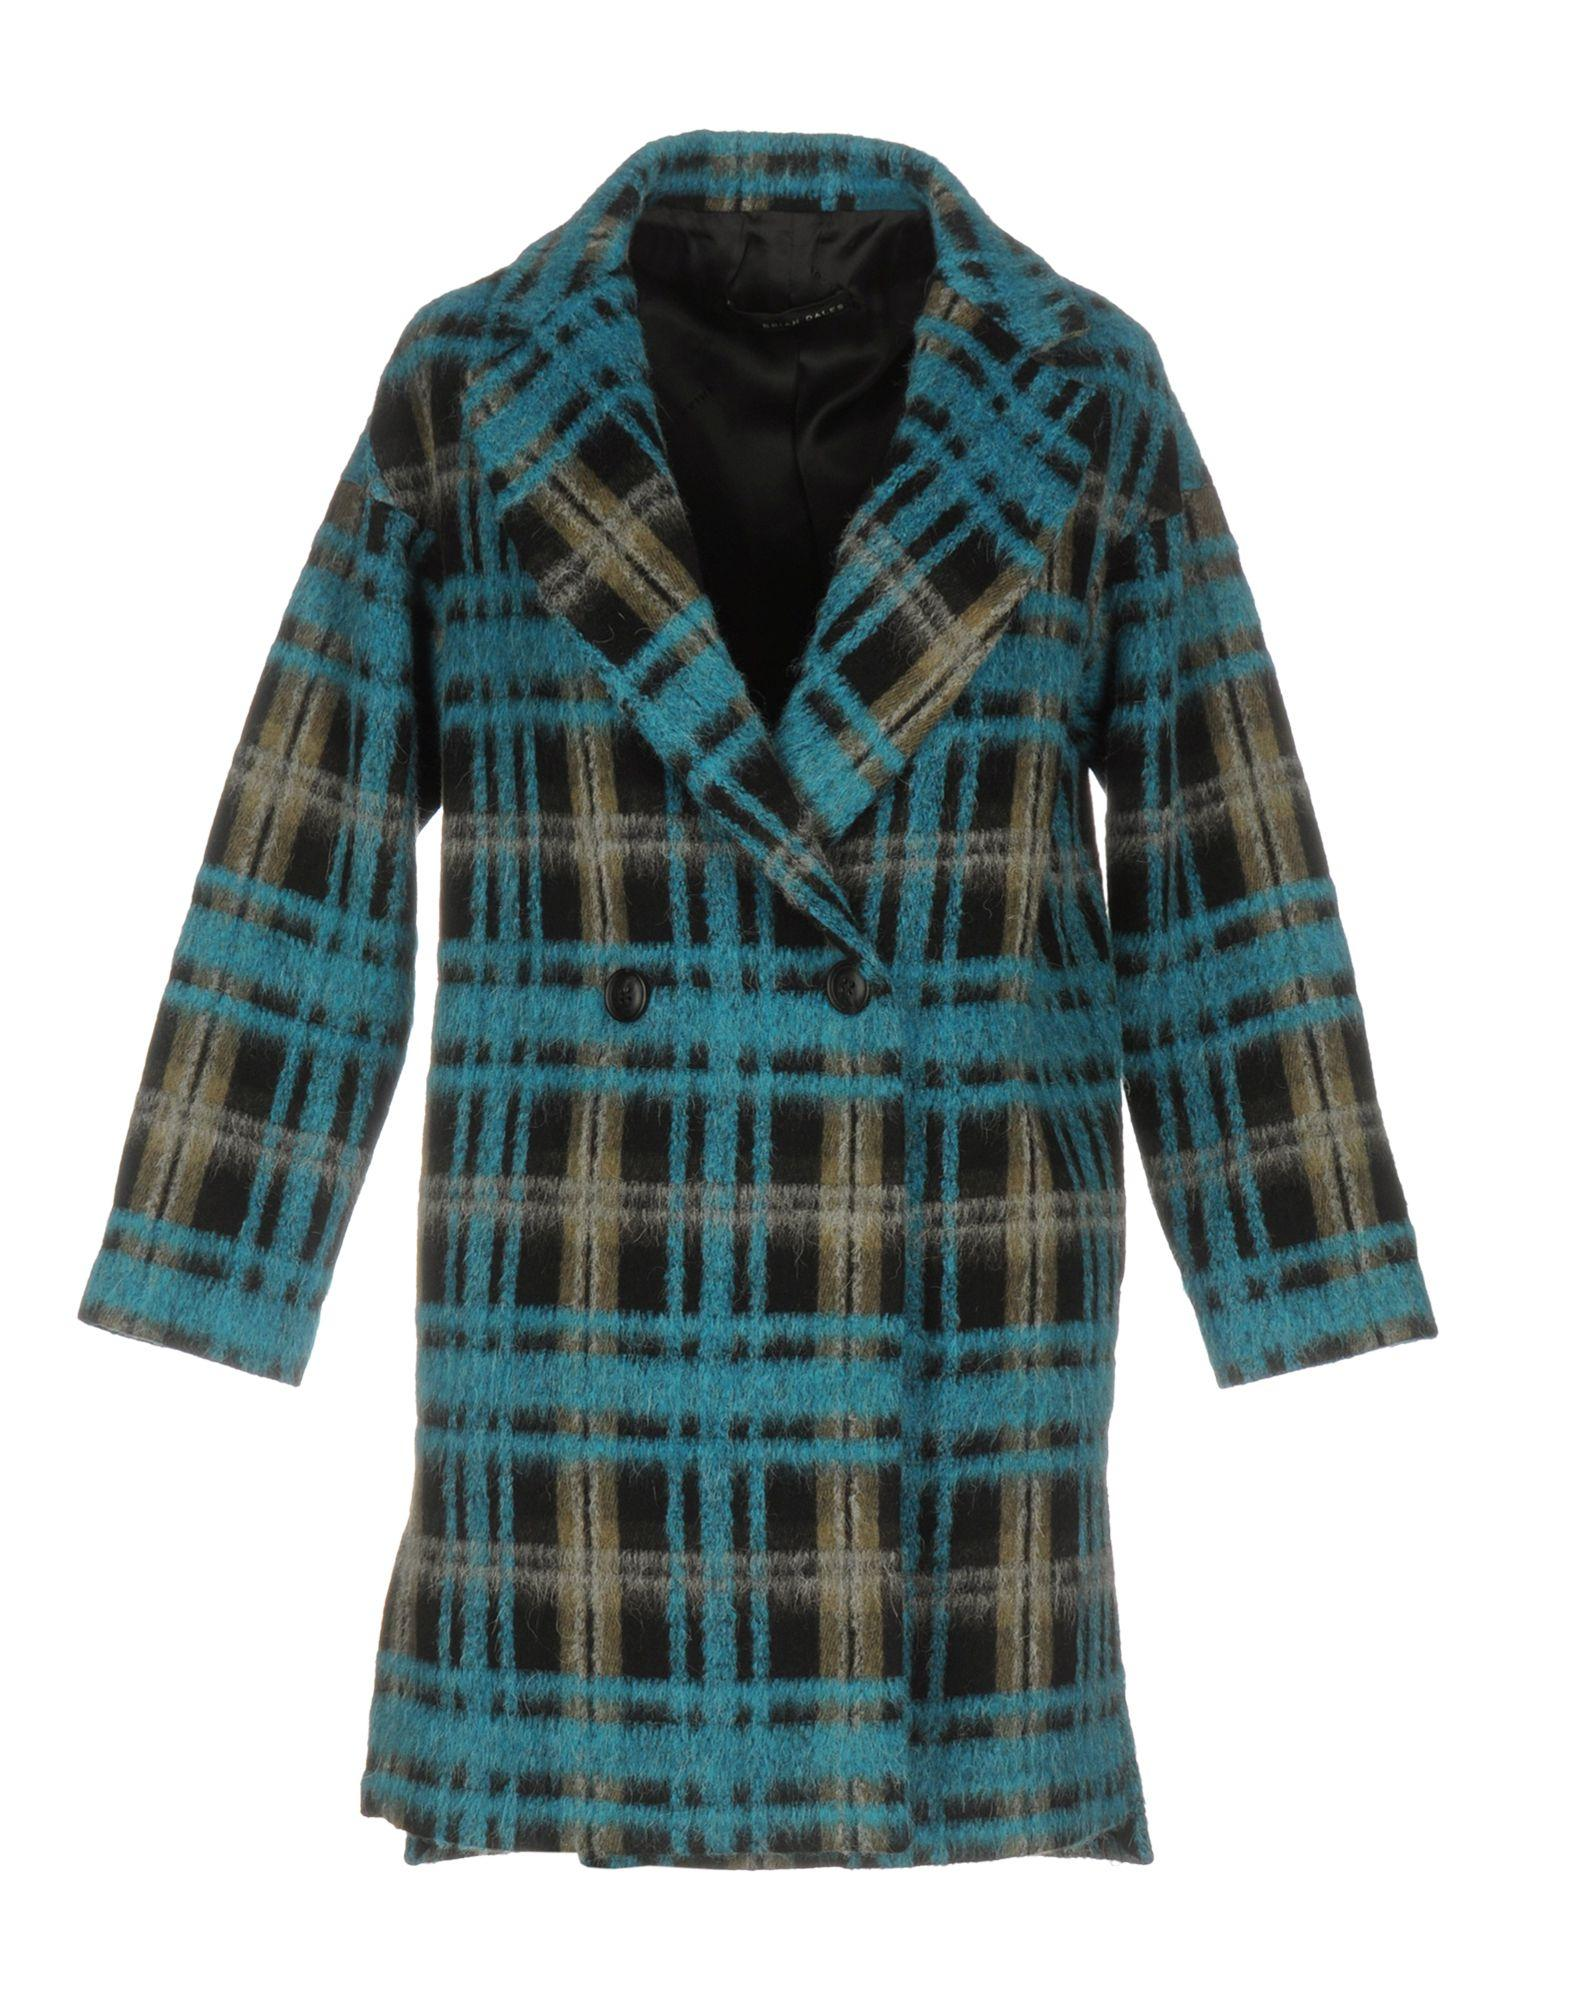 Brian Dales Coats In Turquoise